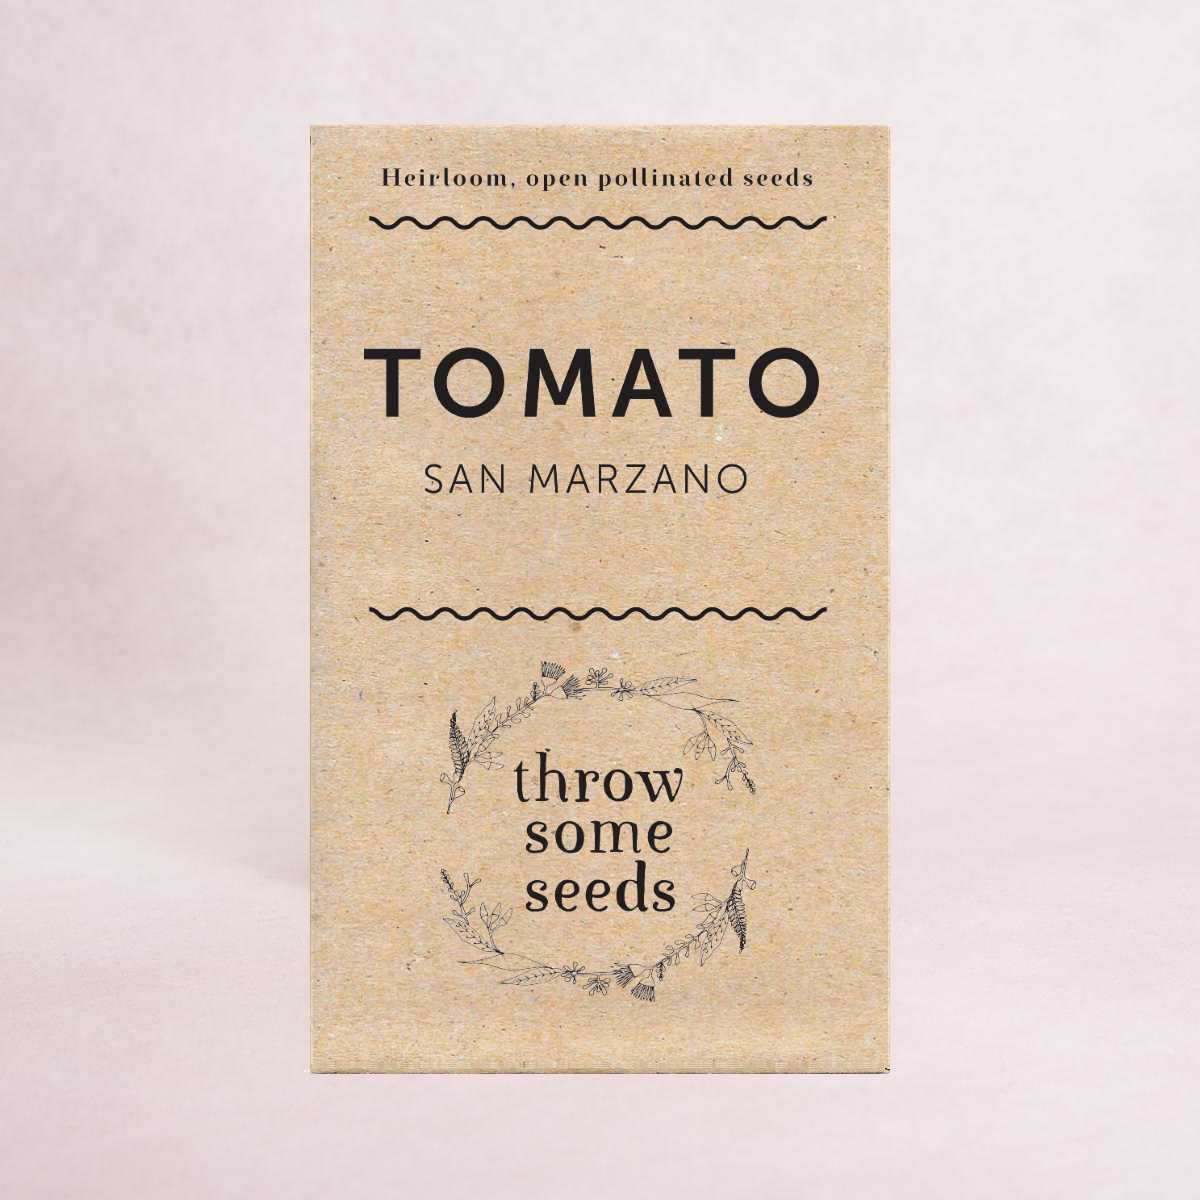 Tomato (San Marzano) Seeds - Seeds - Throw Some Seeds - Nature Inspired Gifts for the Home & Garden